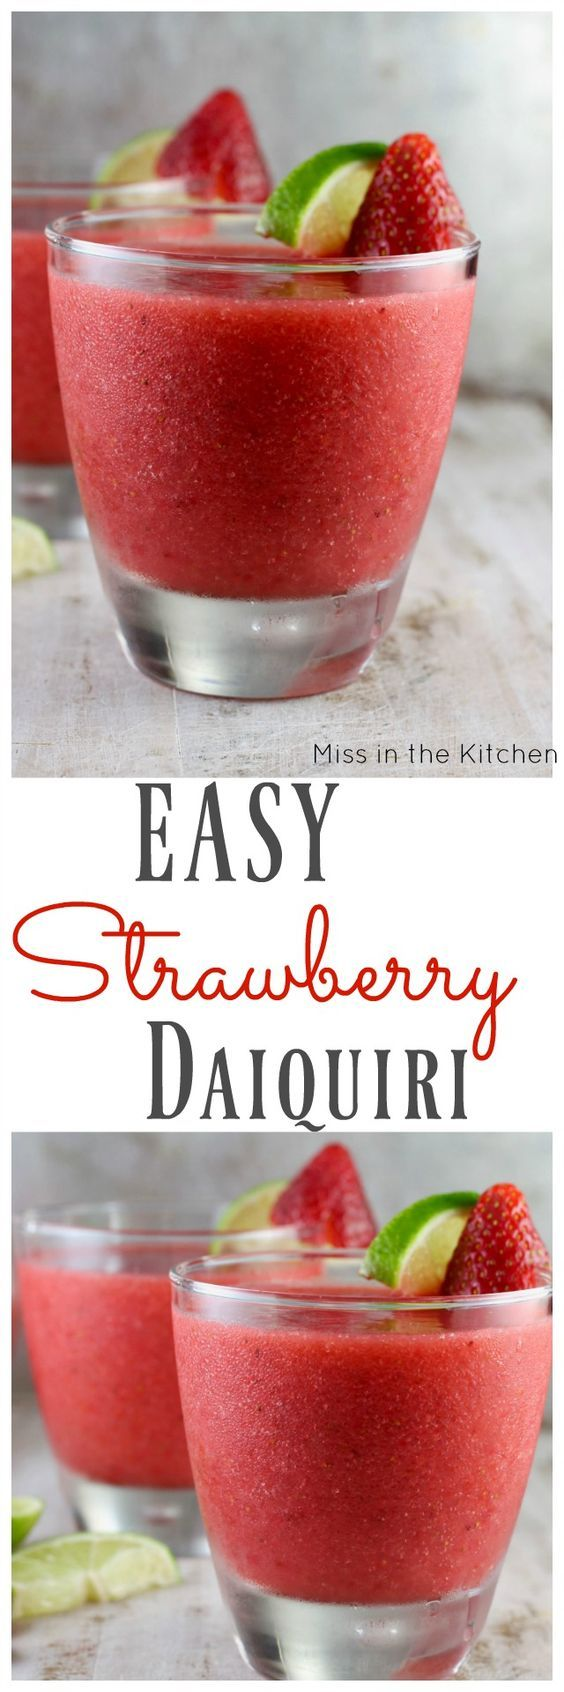 Easy Strawberry Daiquiri Cocktail ~ Perfect weekend cocktail recipe found at MissintheKitchen.com (party drinks alcohol shots)